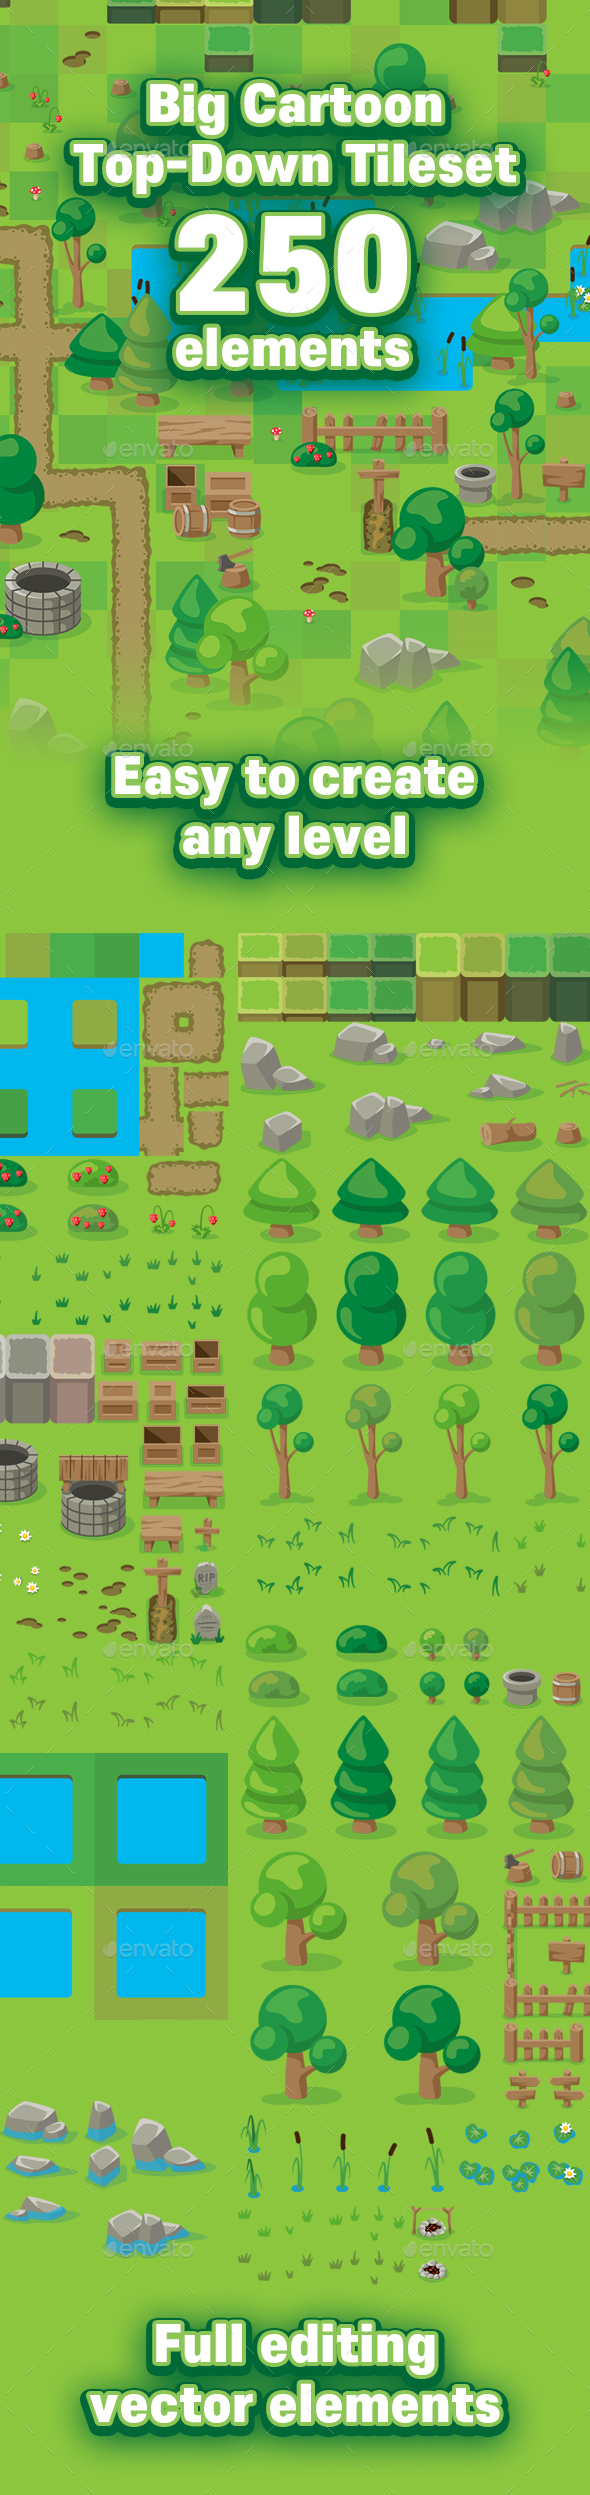 16X16 Tileset game tilesets from graphicriver